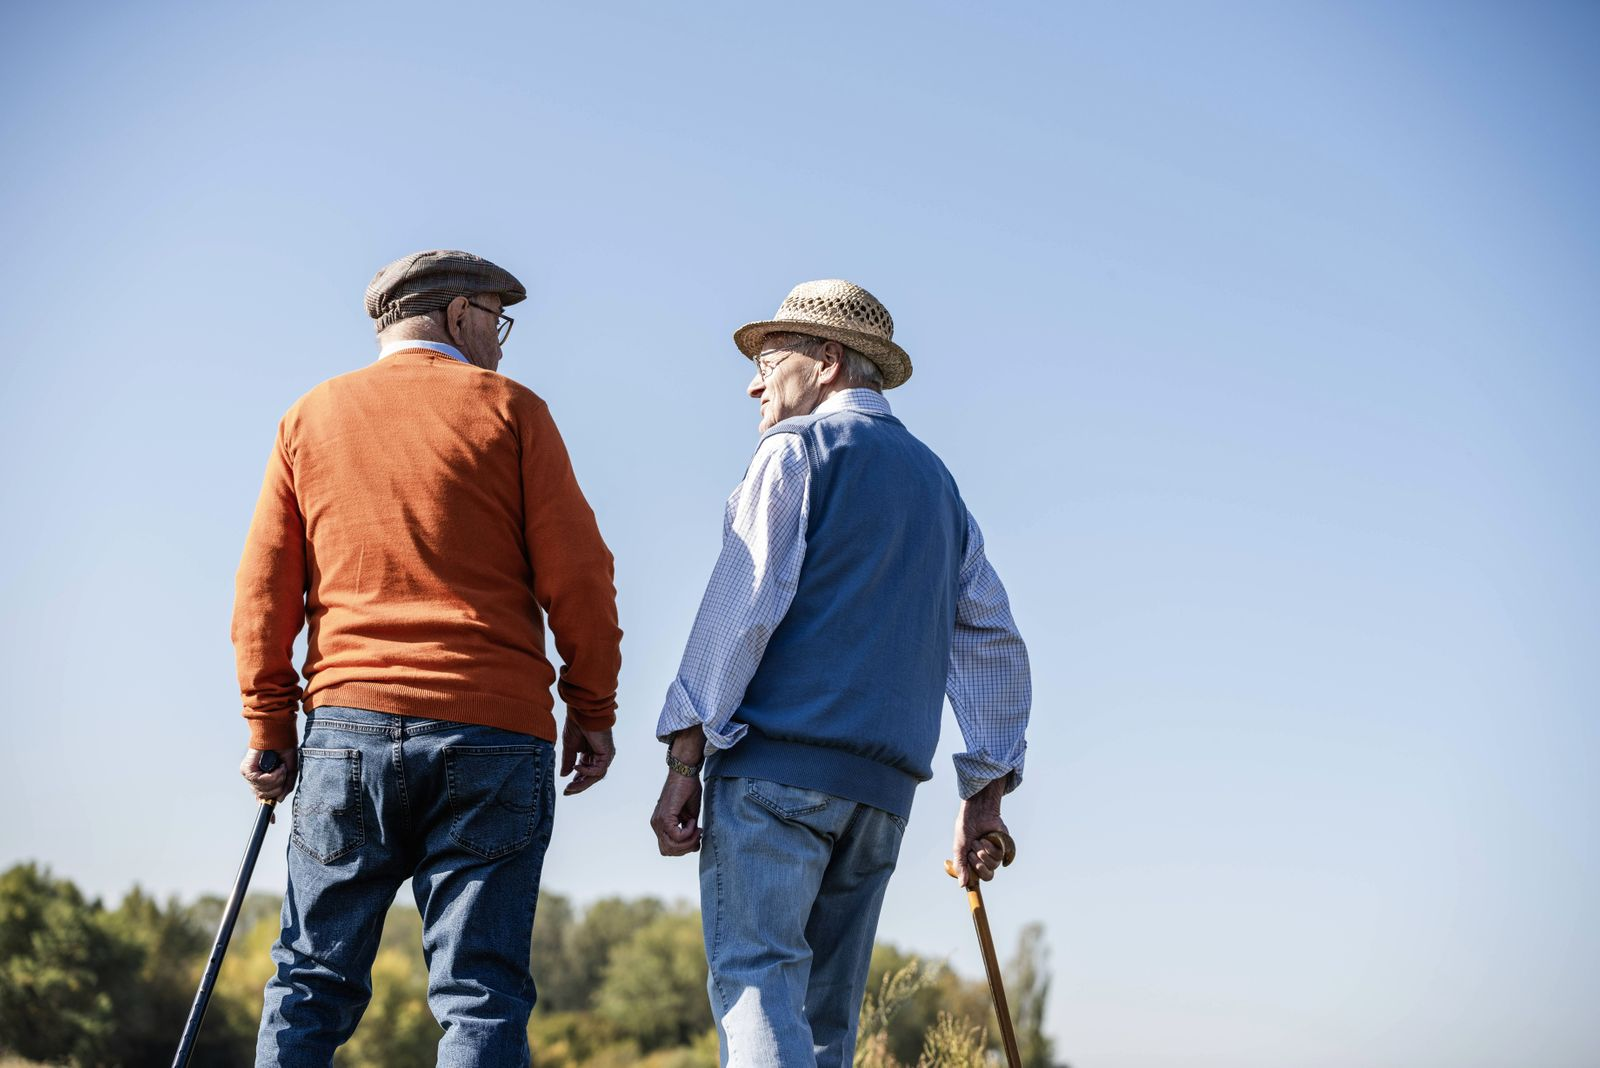 Two old friends taking a stroll through the fields talking about old times model released Symbolfot